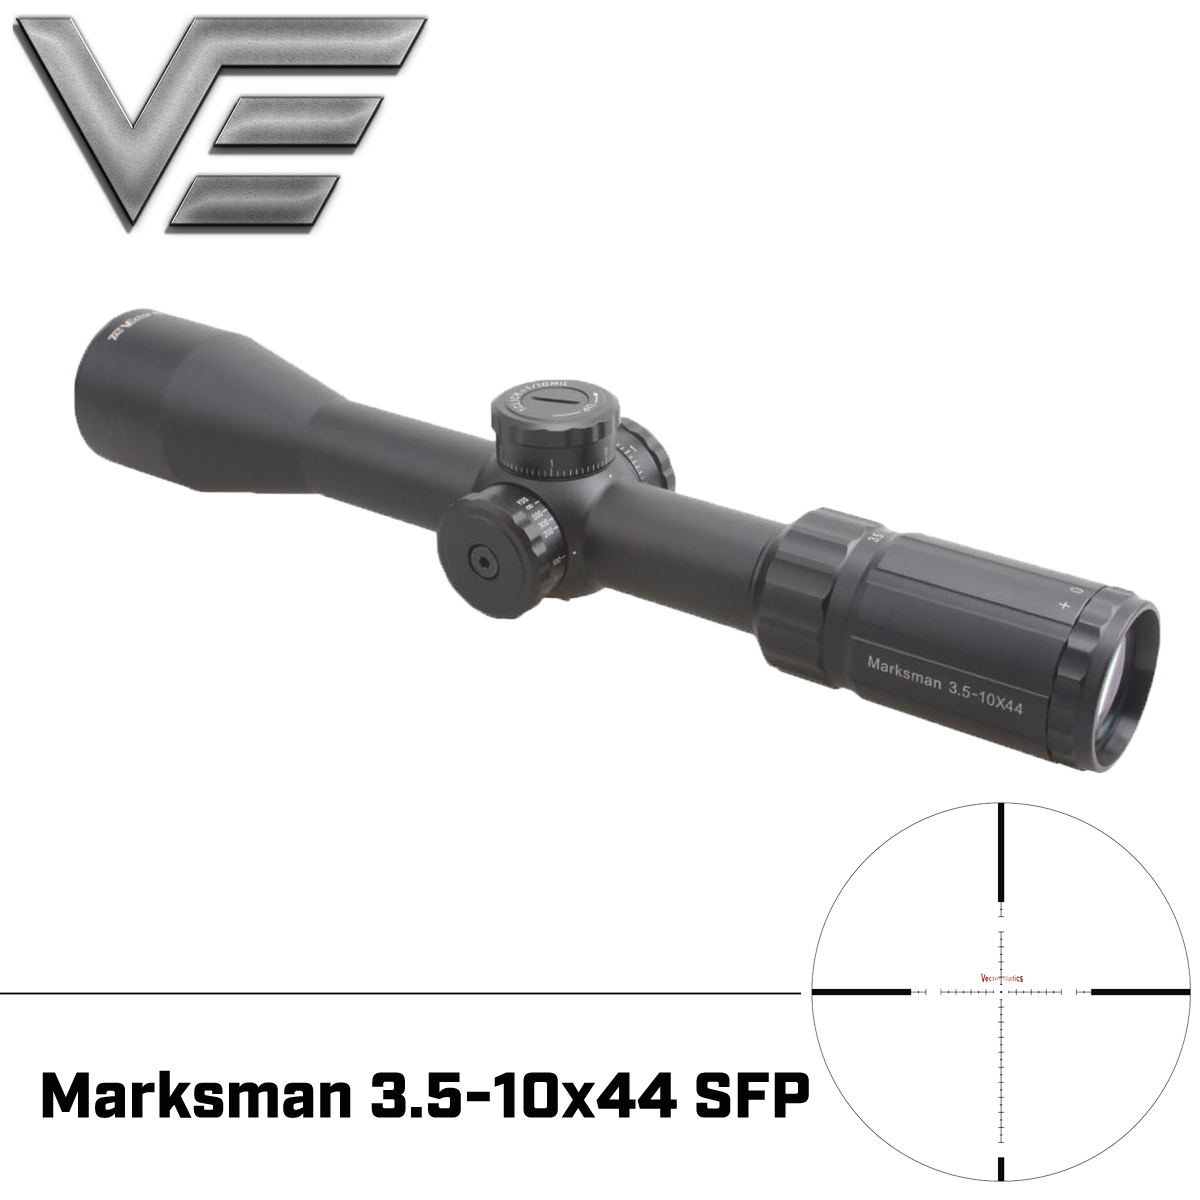 Vector Optics Marksman 3.5-10x44 Tactical Gun Rifle Scope MP Reticle Low Turret 1/10 MIL Adjustment With Mount For Best Hunting